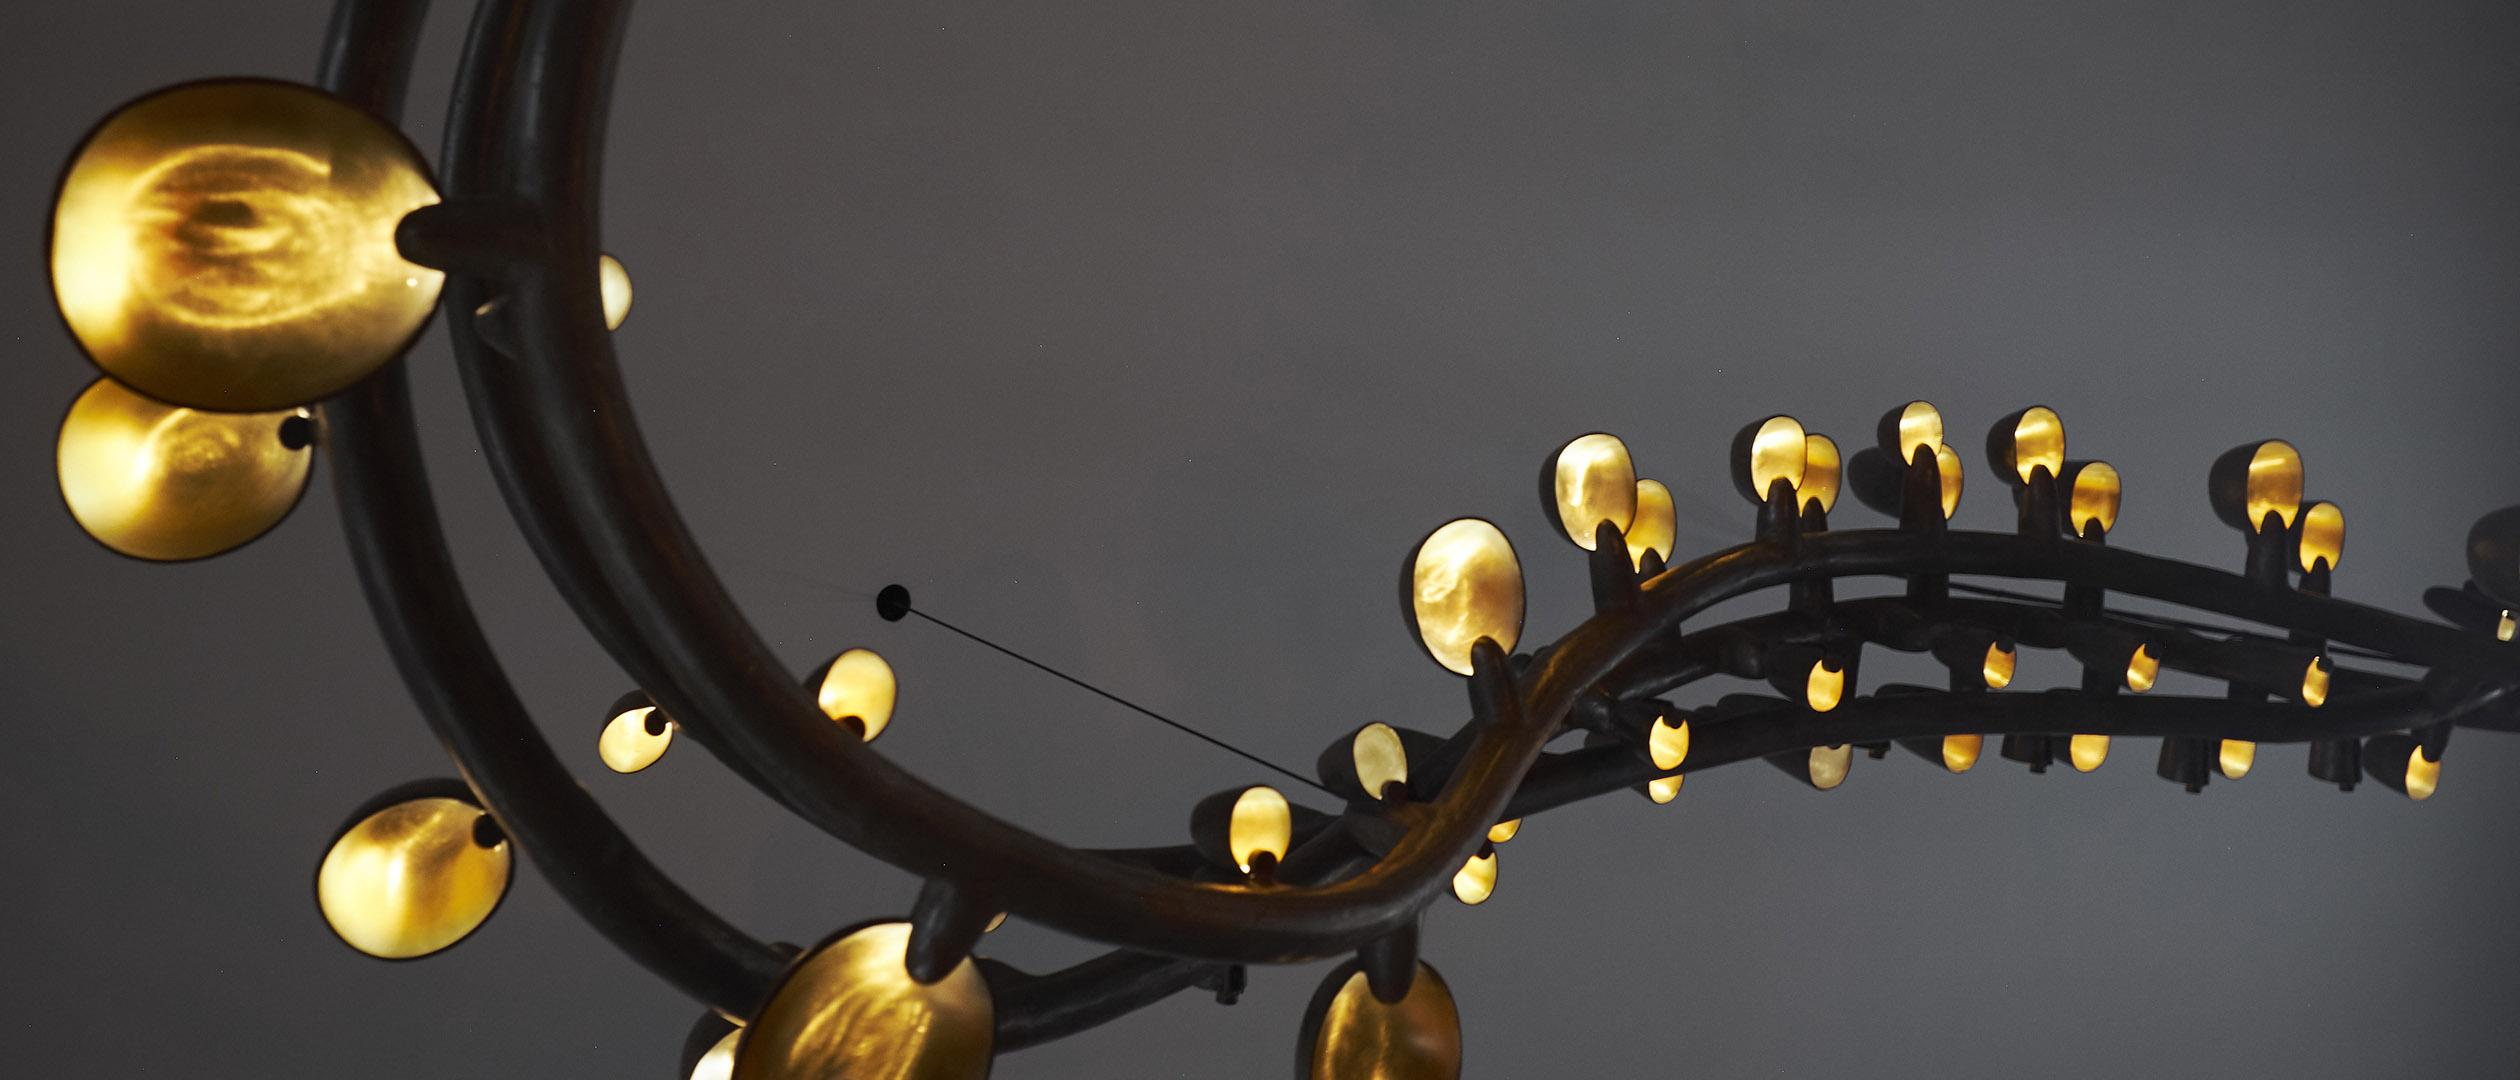 Bronze lighting sculpture or chandelier by Studio Molen, Frederik Molenschot